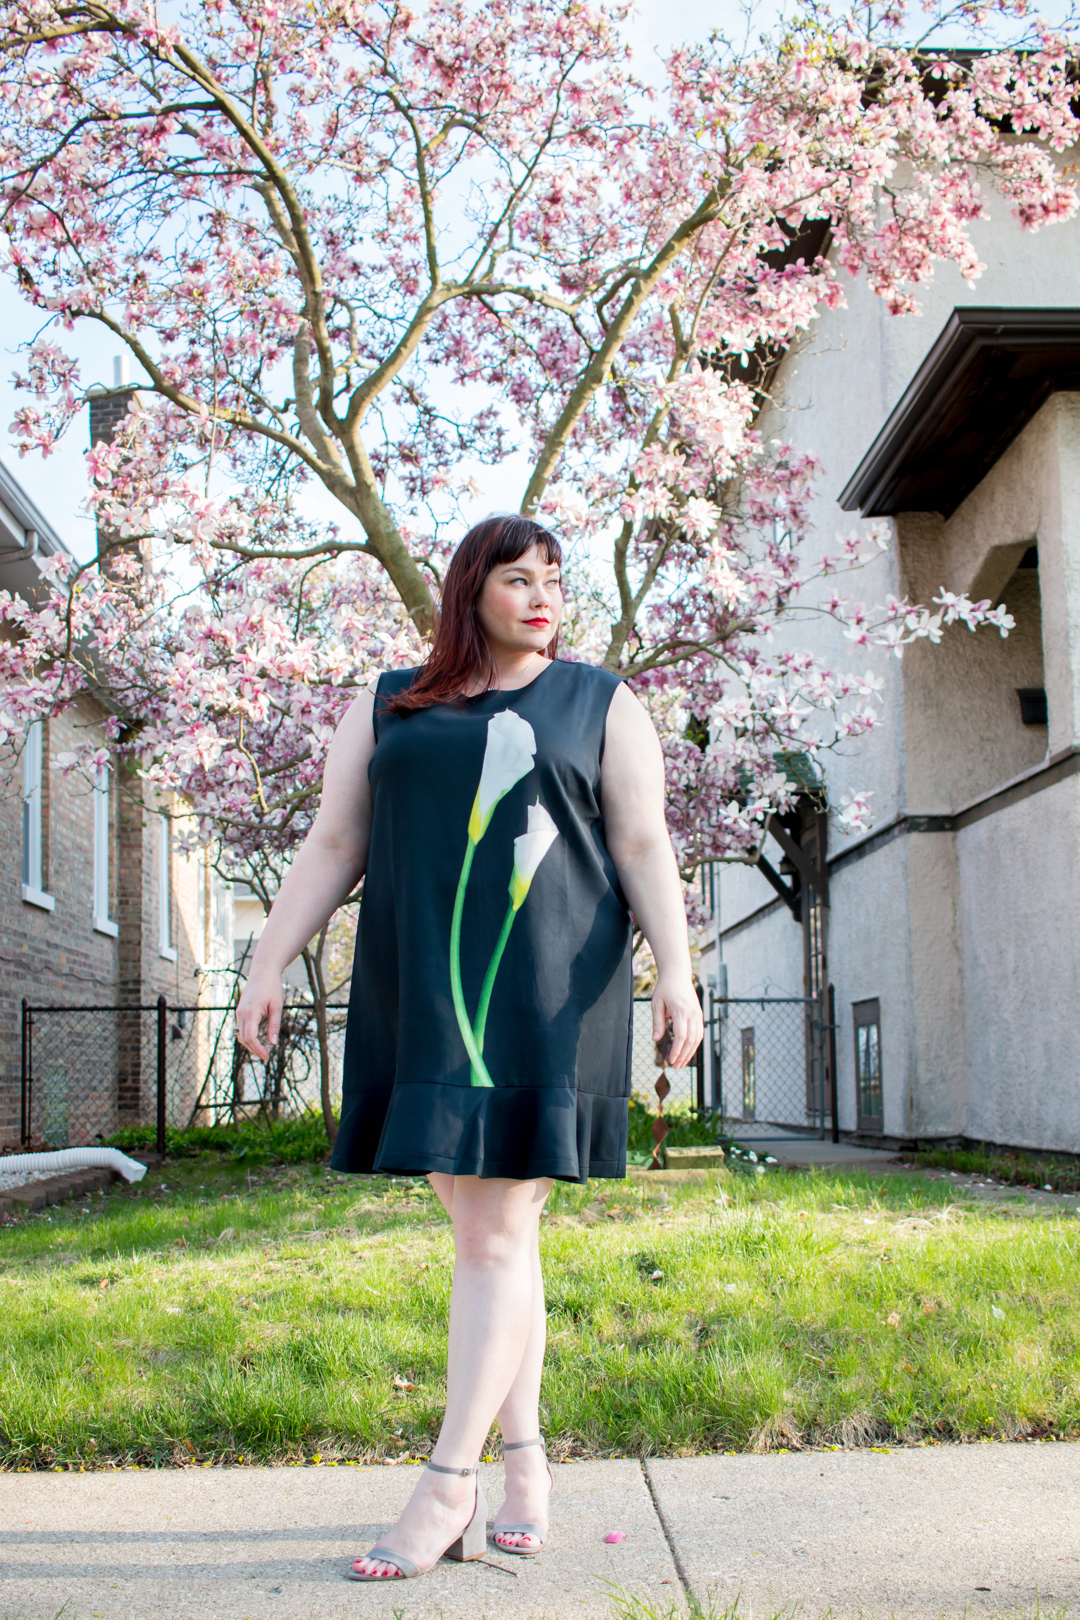 Plus Size Blogger wearing Calla Lily Dress from Victoria Beckham x Target collection